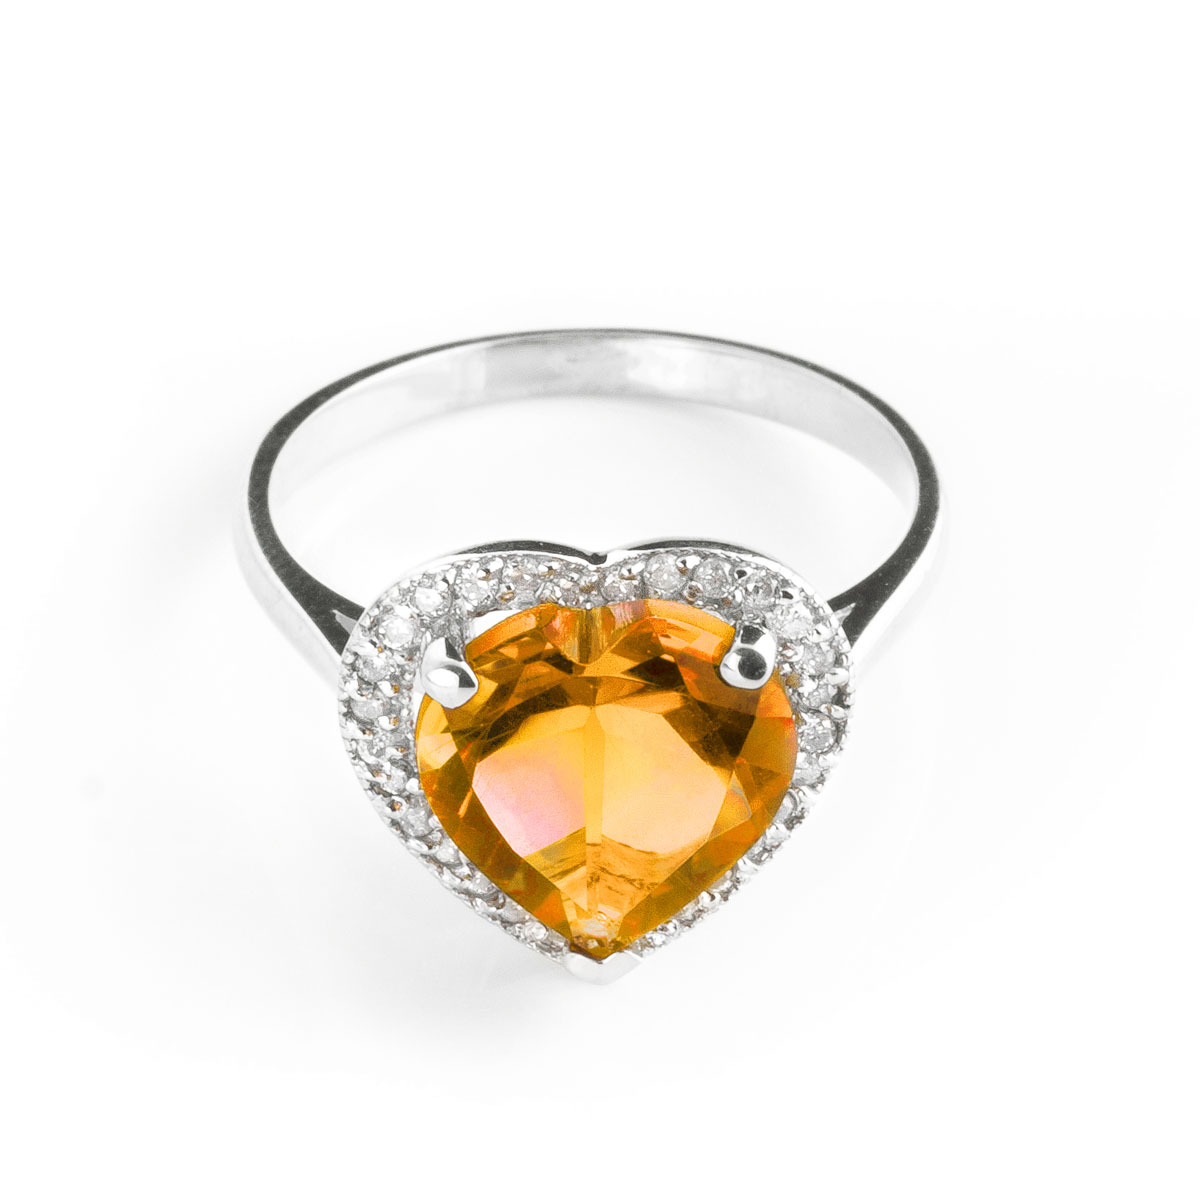 Citrine Halo Ring 3.24 ctw in 9ct White Gold